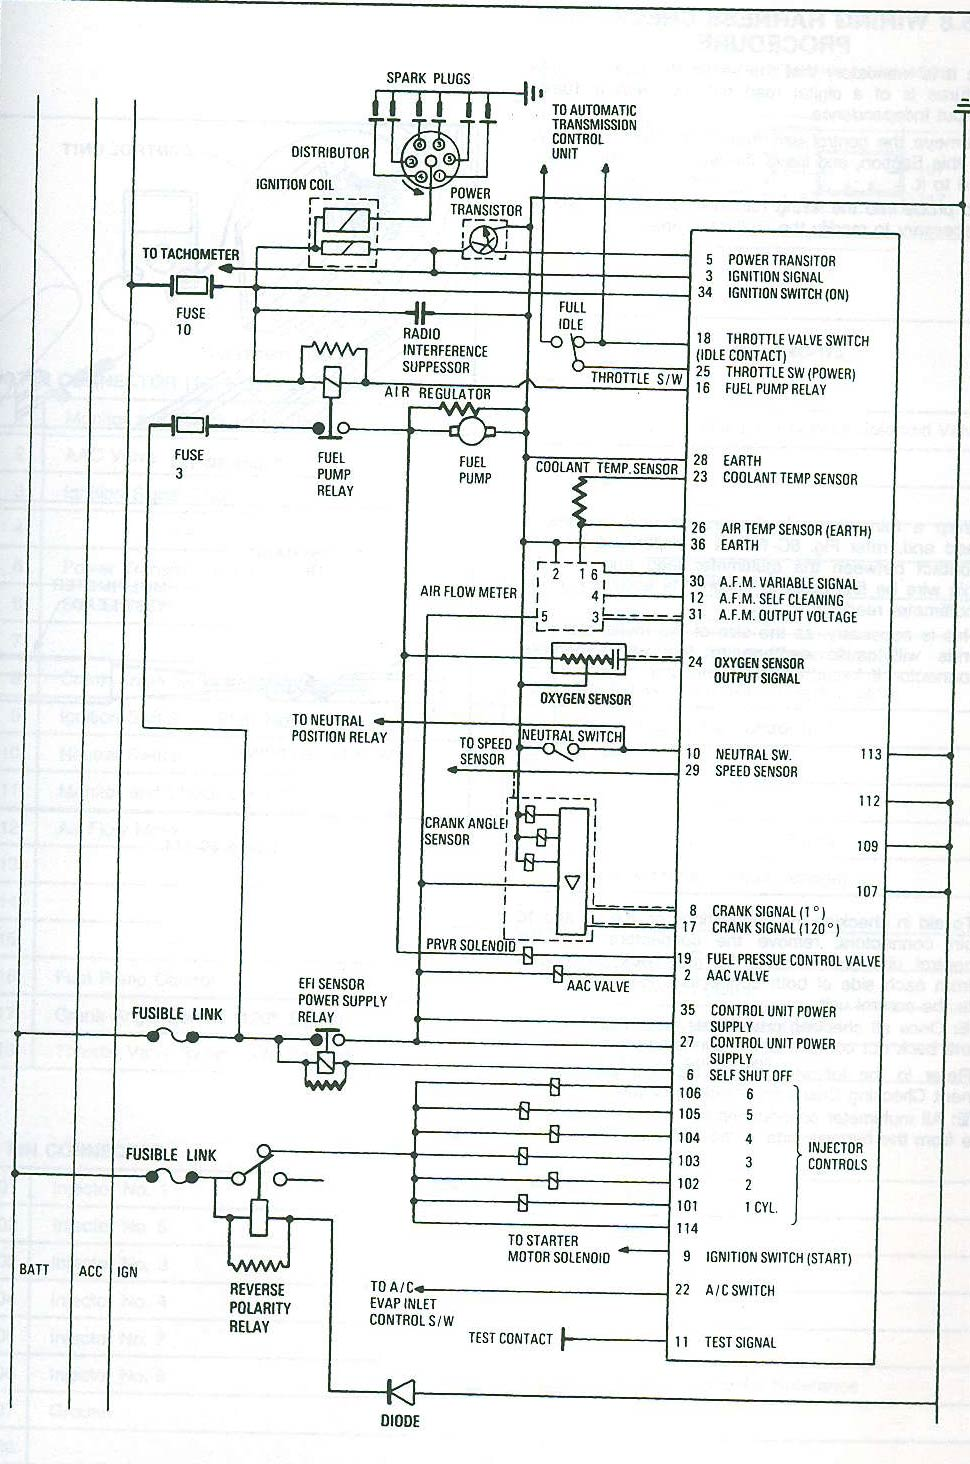 Wiring Diagram Harley Davidson Vl - Wiring Diagram Content on